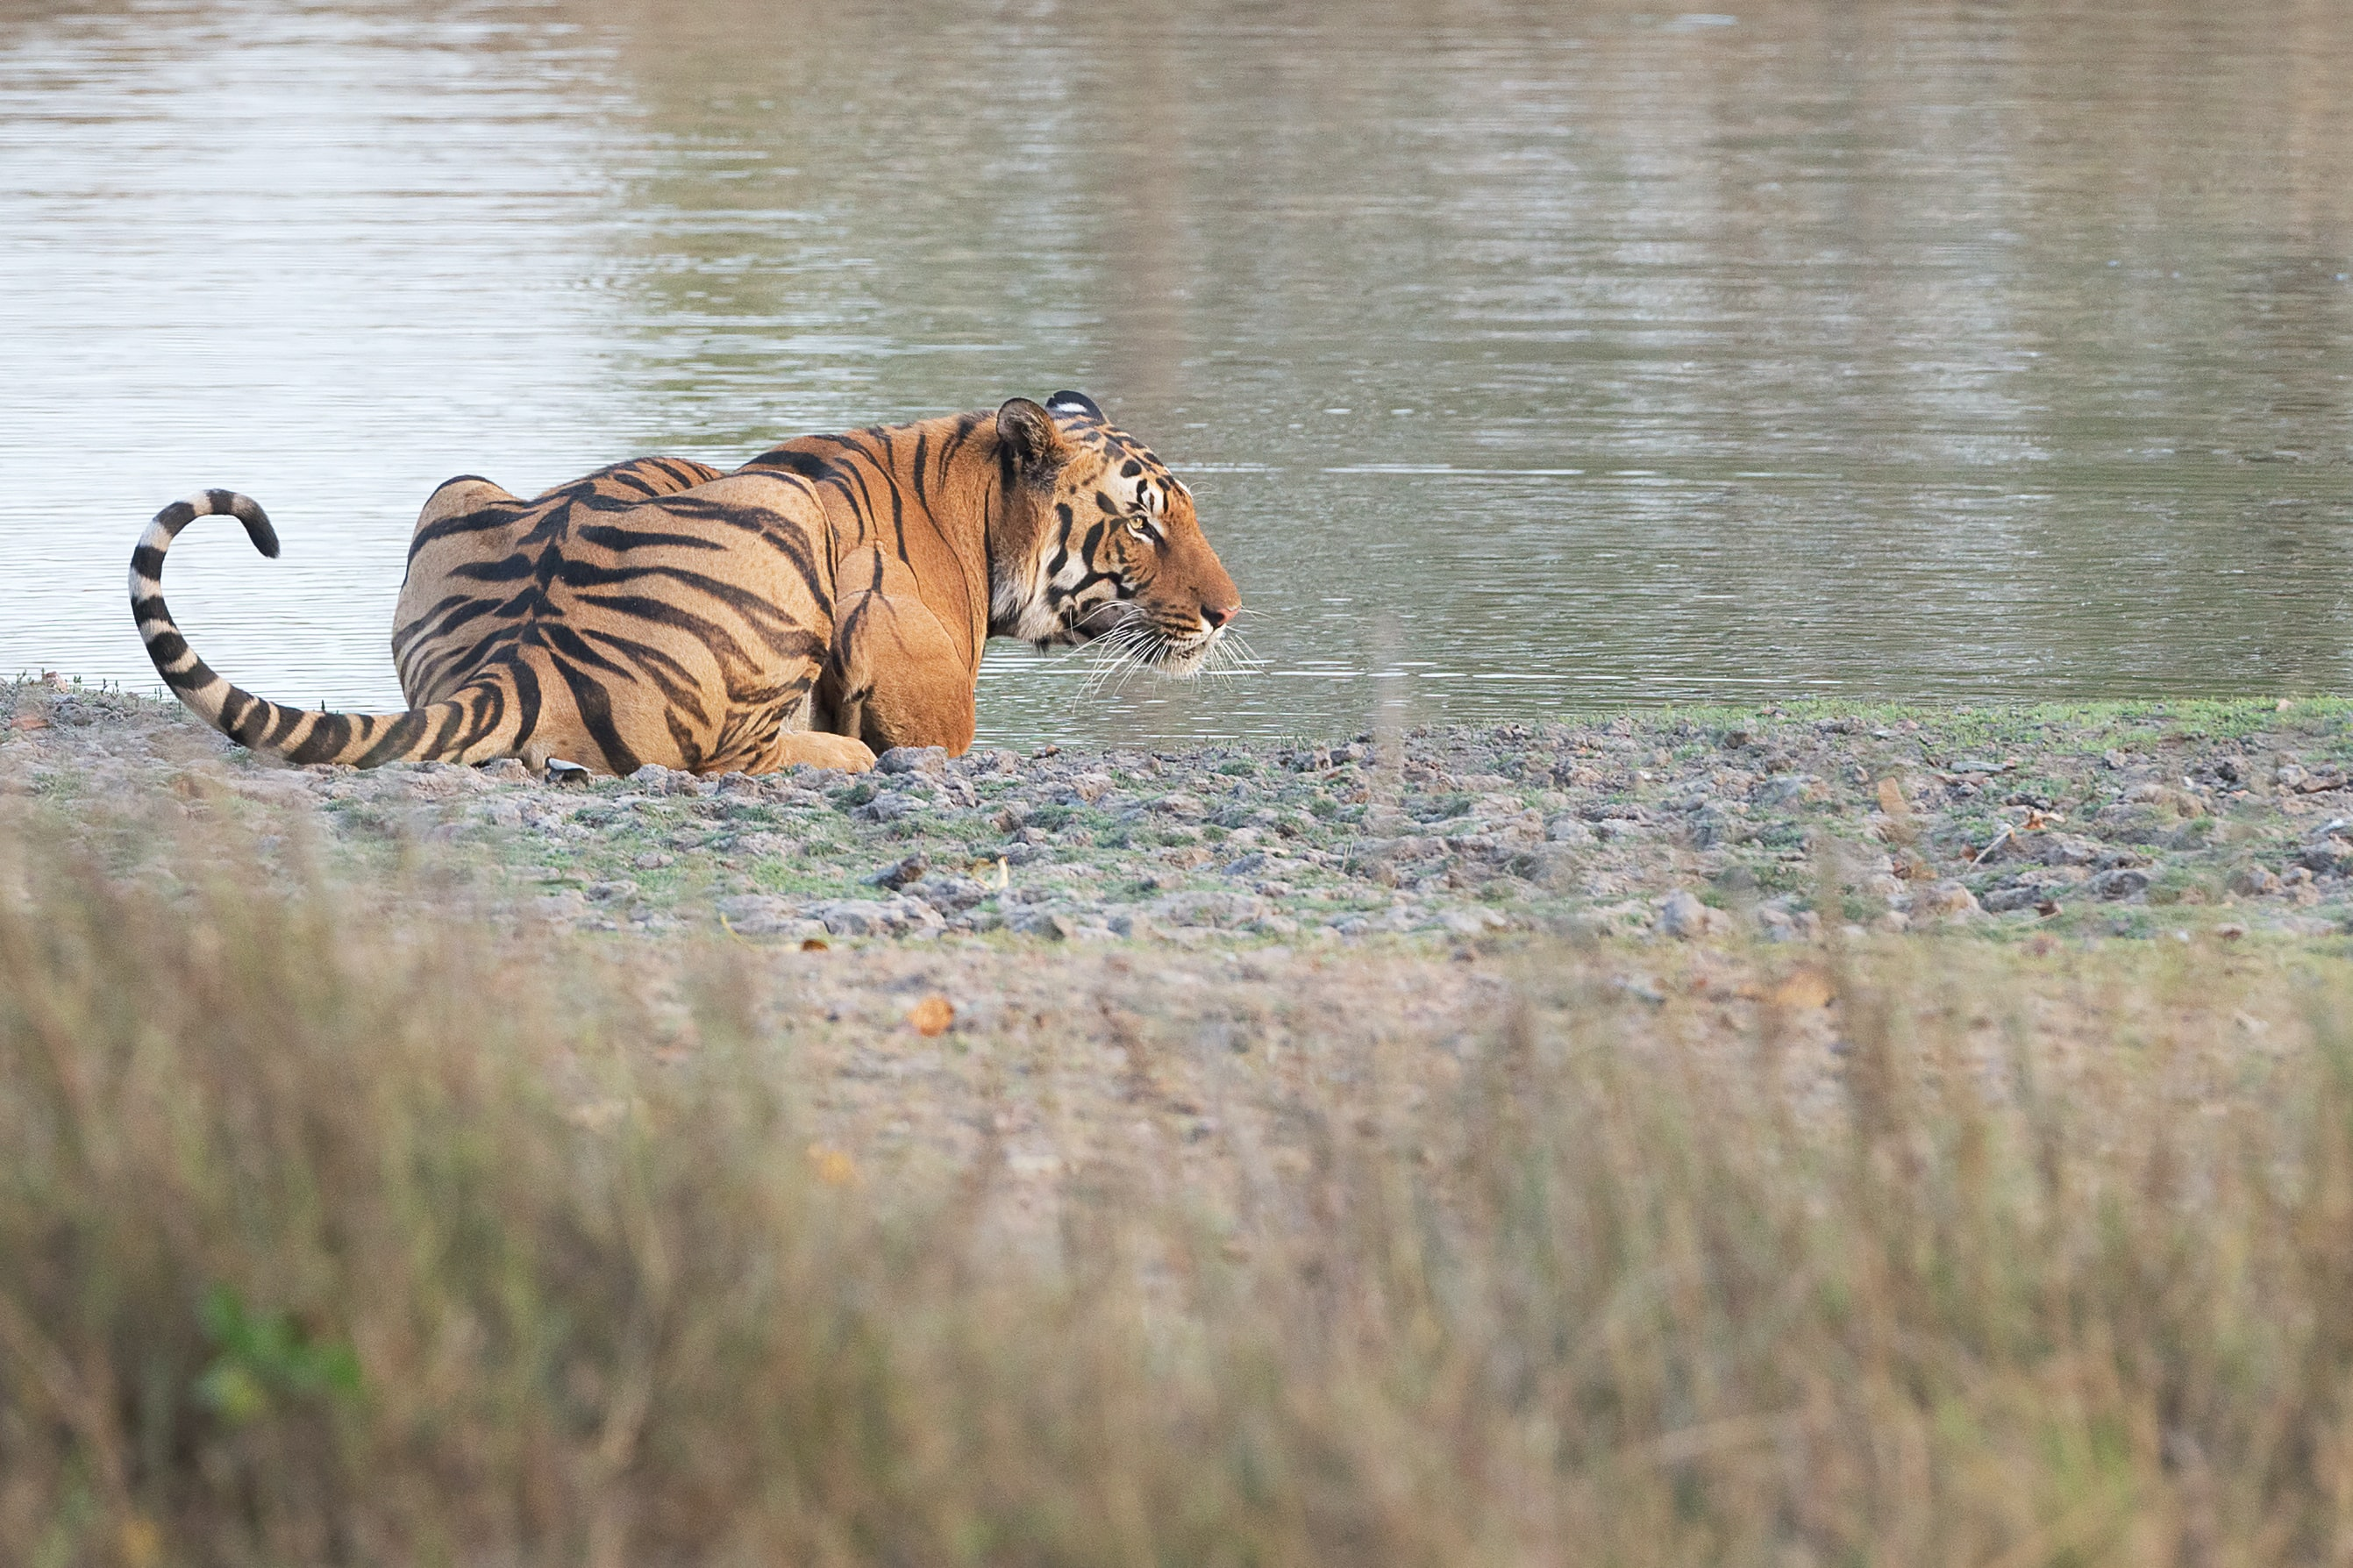 tiger leaning near body of water